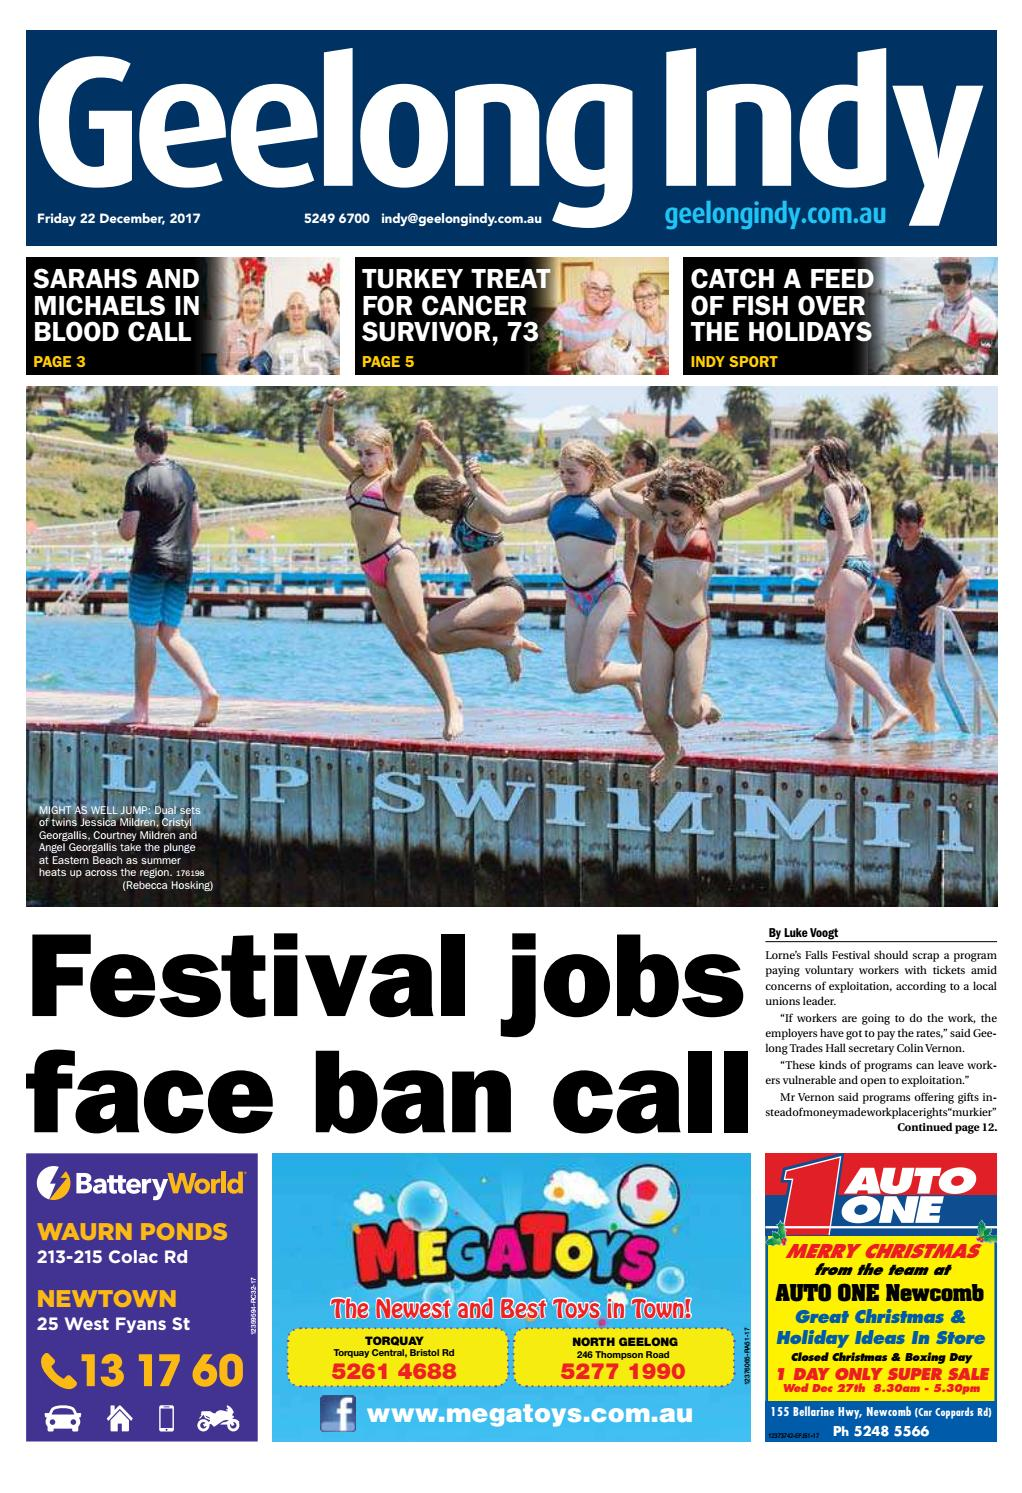 Geelong Indy - 22nd December 2017 by Star News Group - issuu